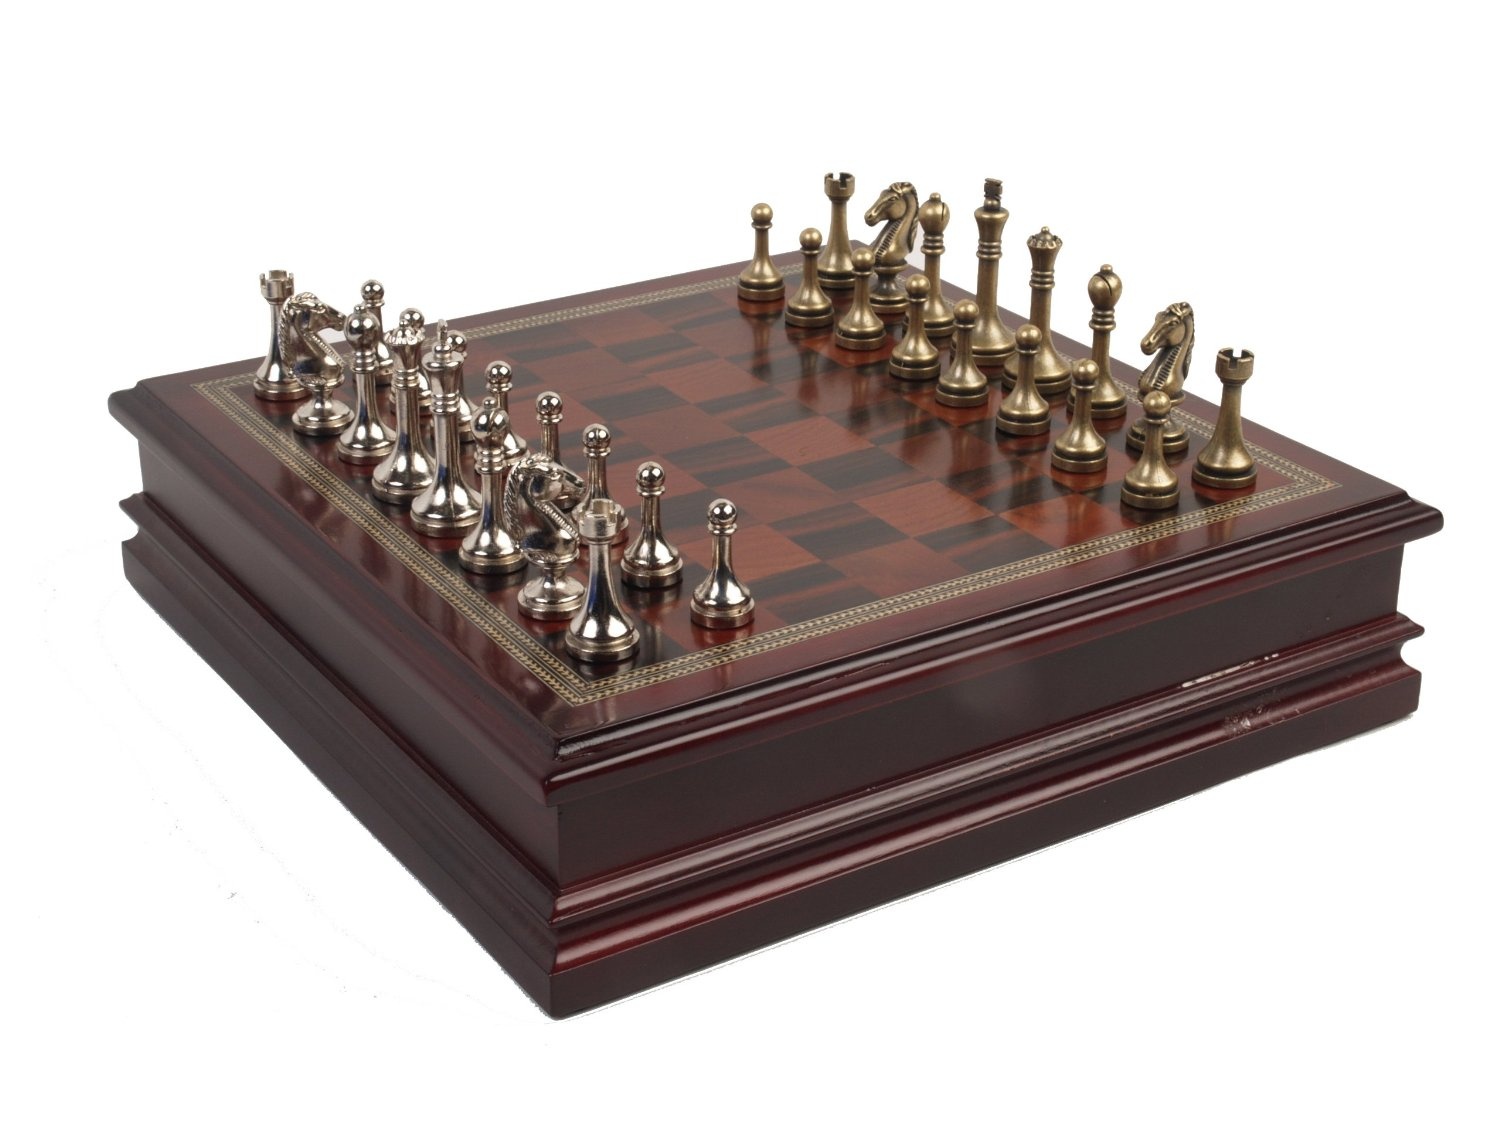 Steel Chess Pieces Metal Chess Set With Deluxe Wood Board And Storage 2 5